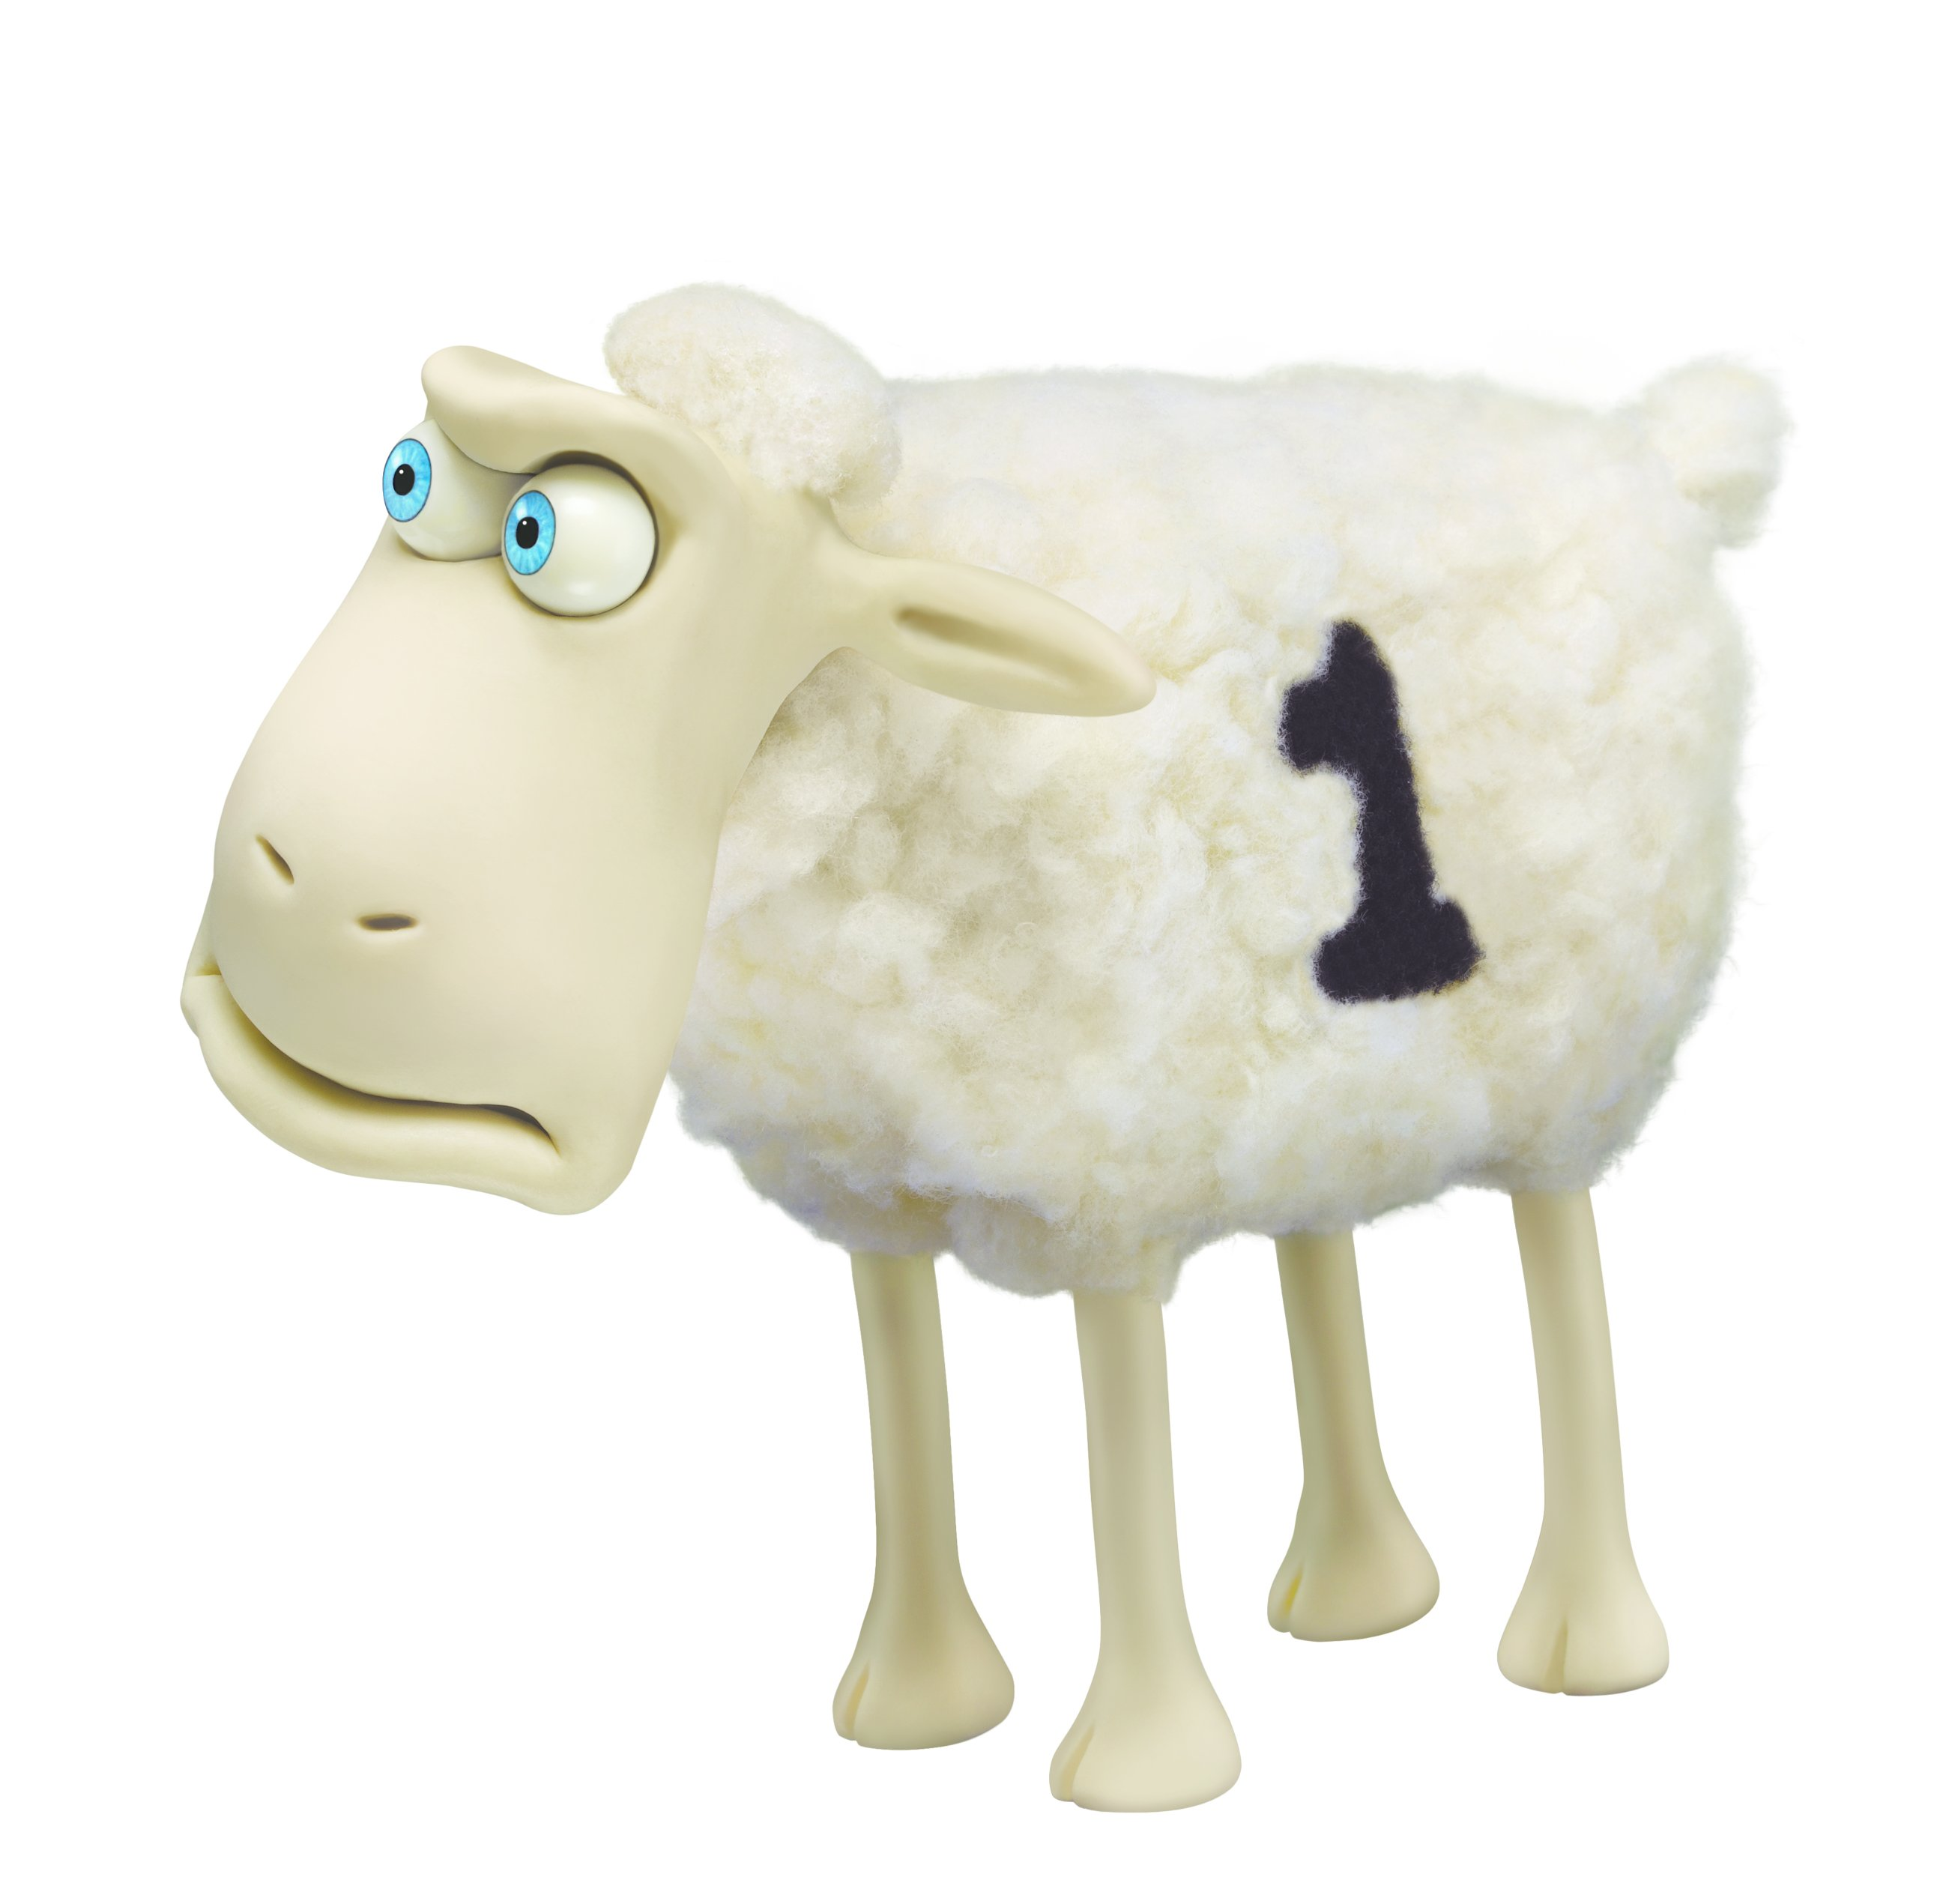 serta mattress sheep. Serta Mattress Sheep